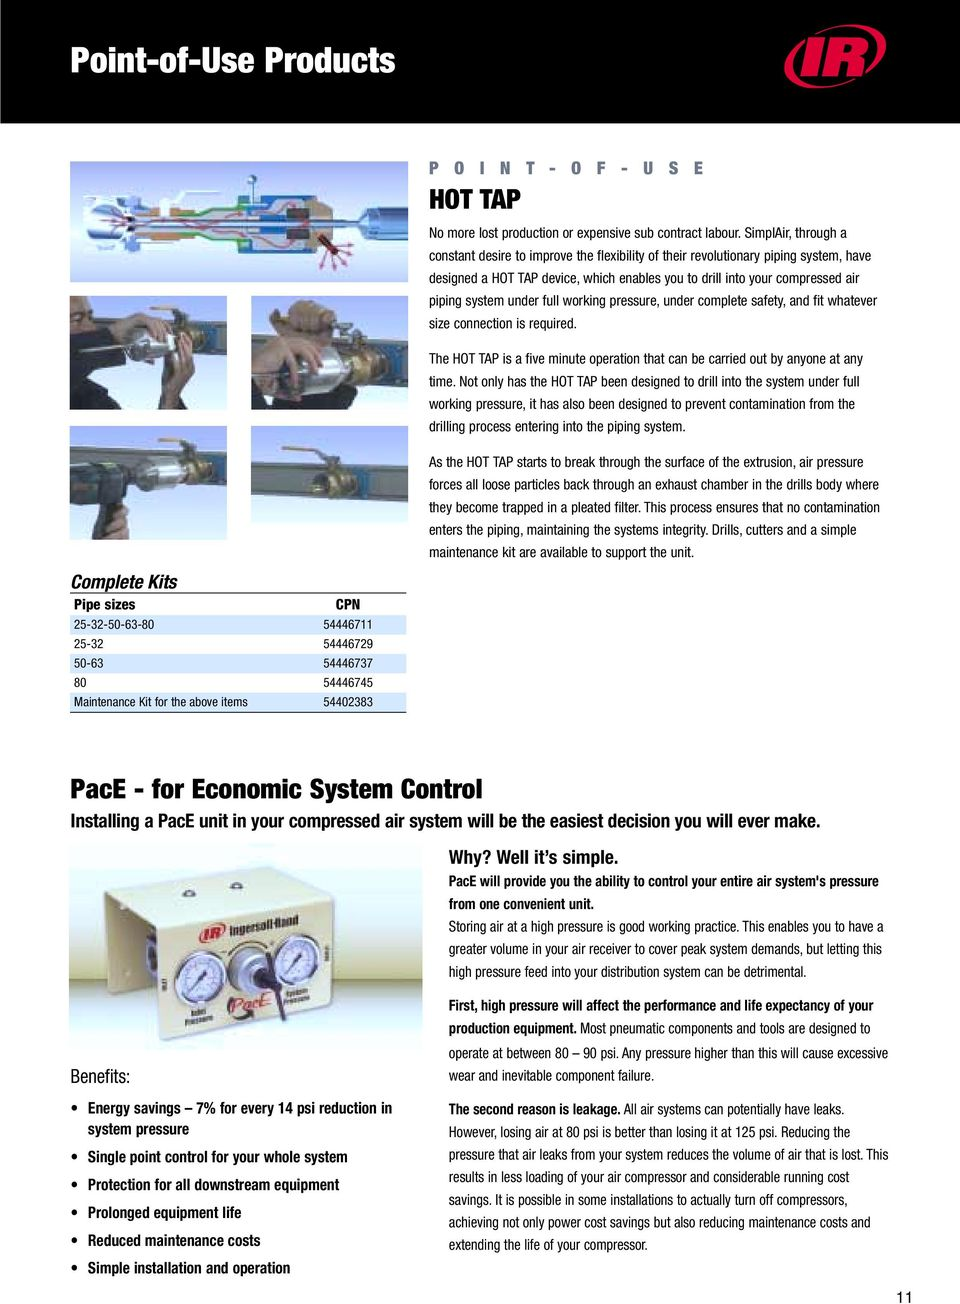 Ingersoll-Rand Air Solutions Installation Accessories - PDF